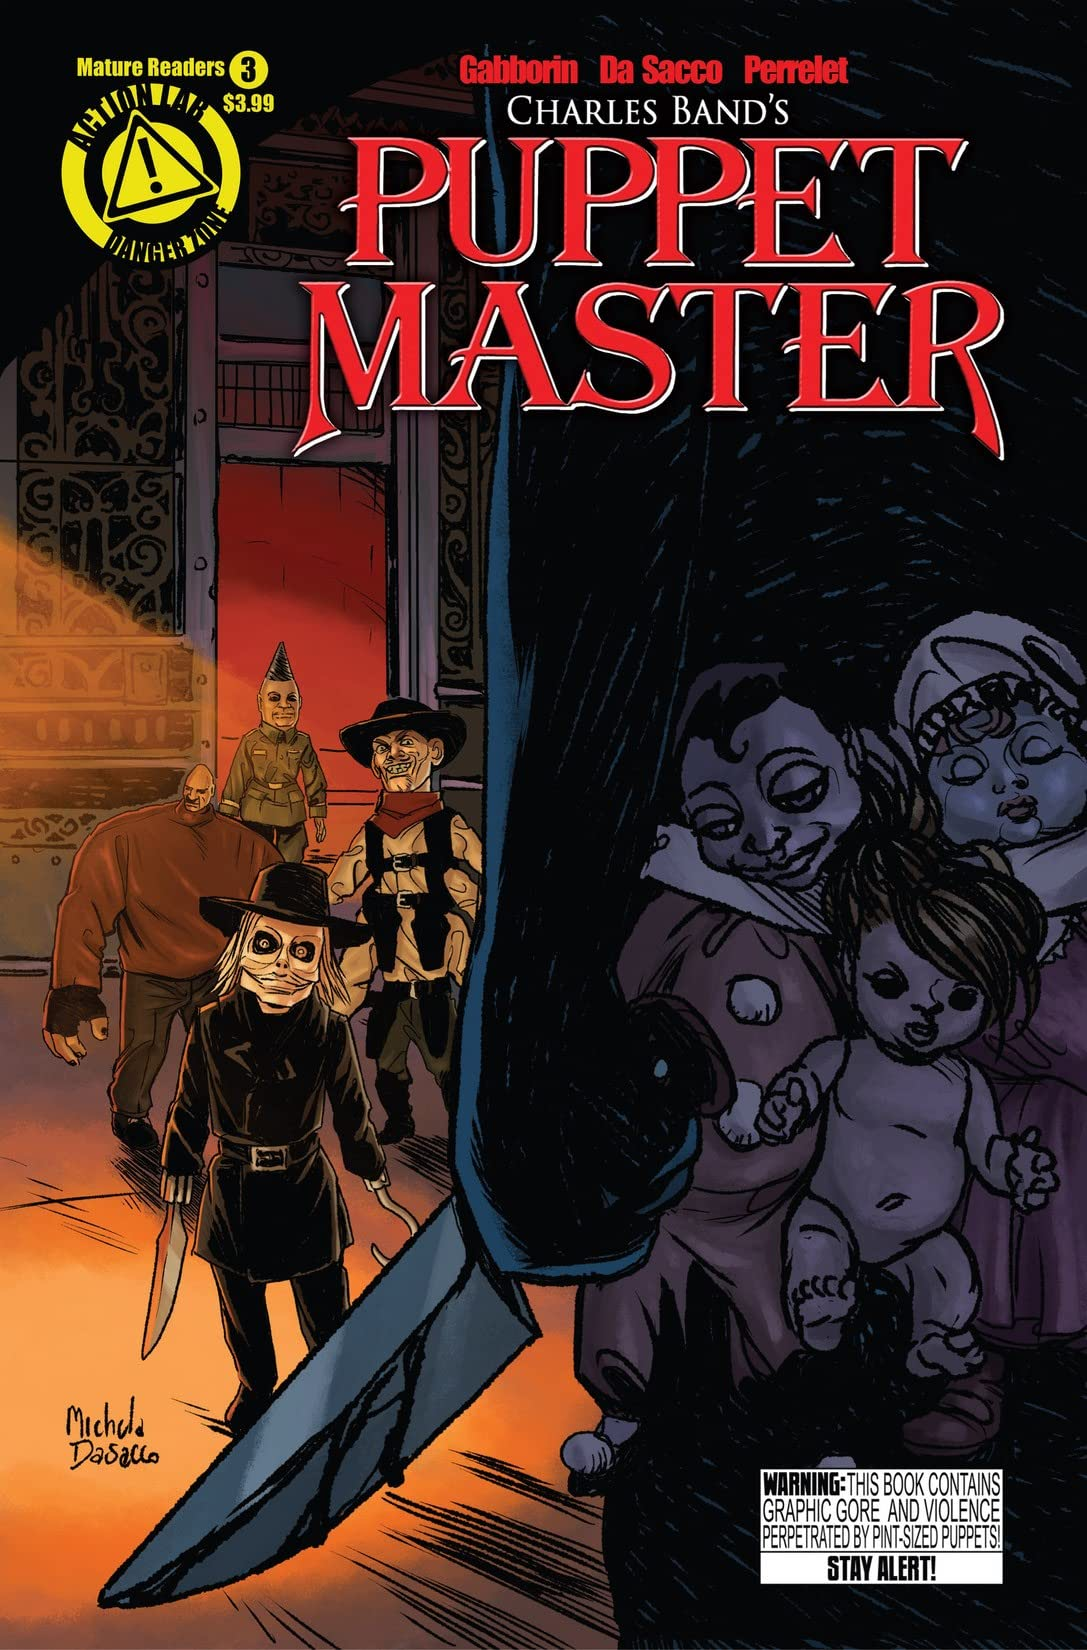 Puppet Master #3